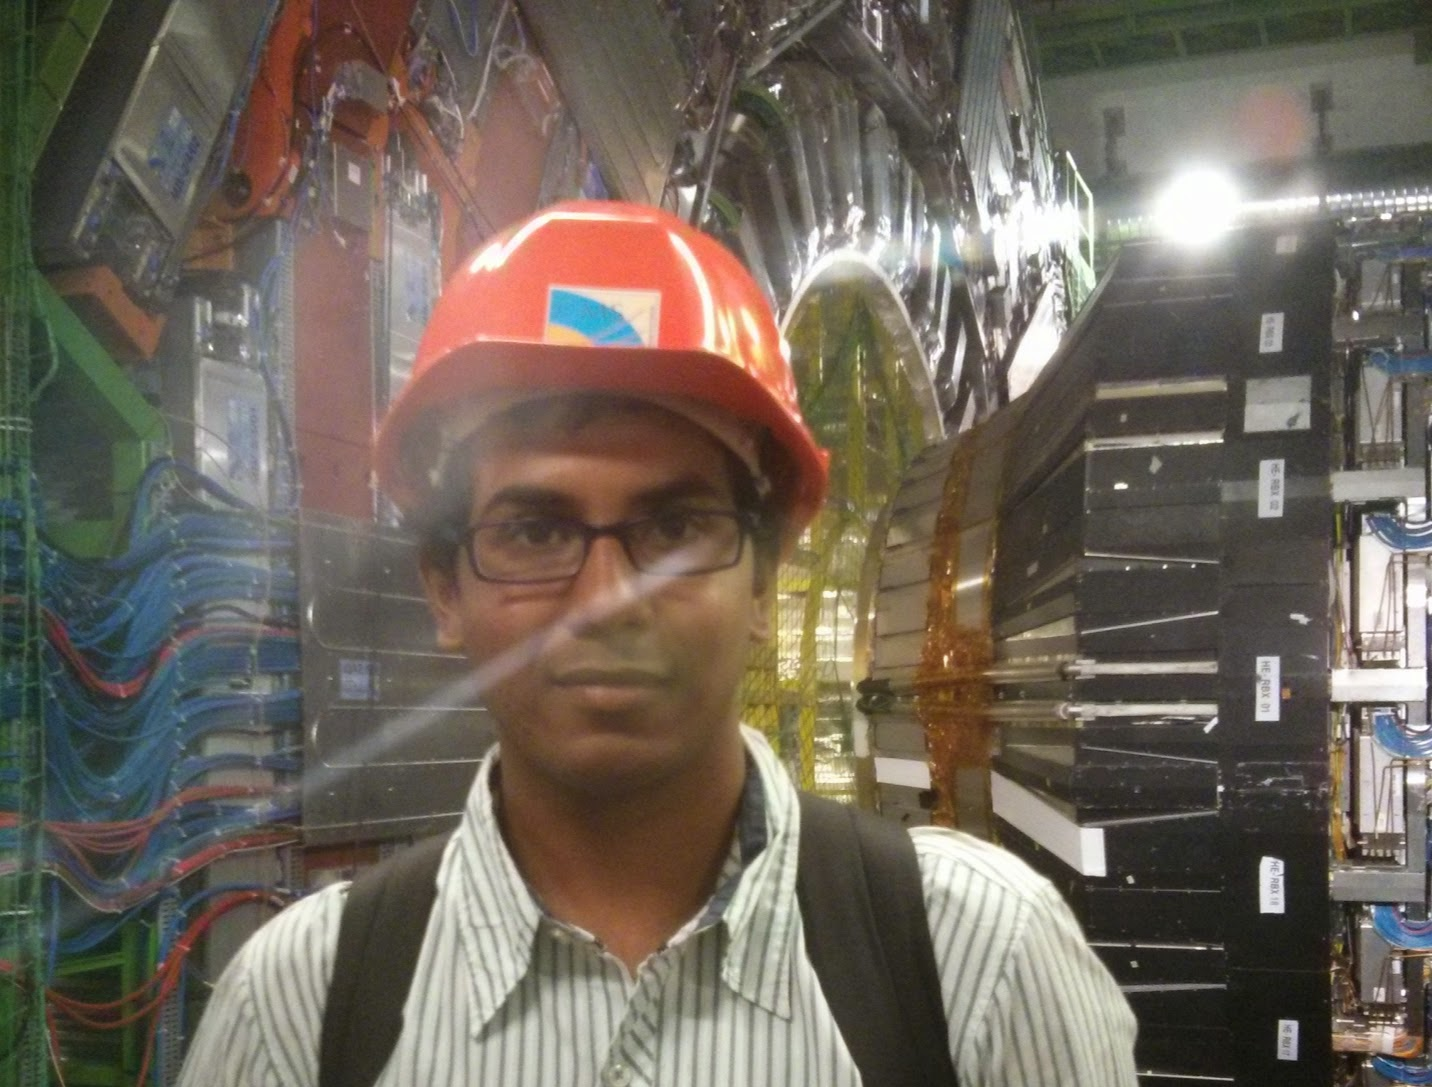 Me standing in front of the Compact Muon Solenoid